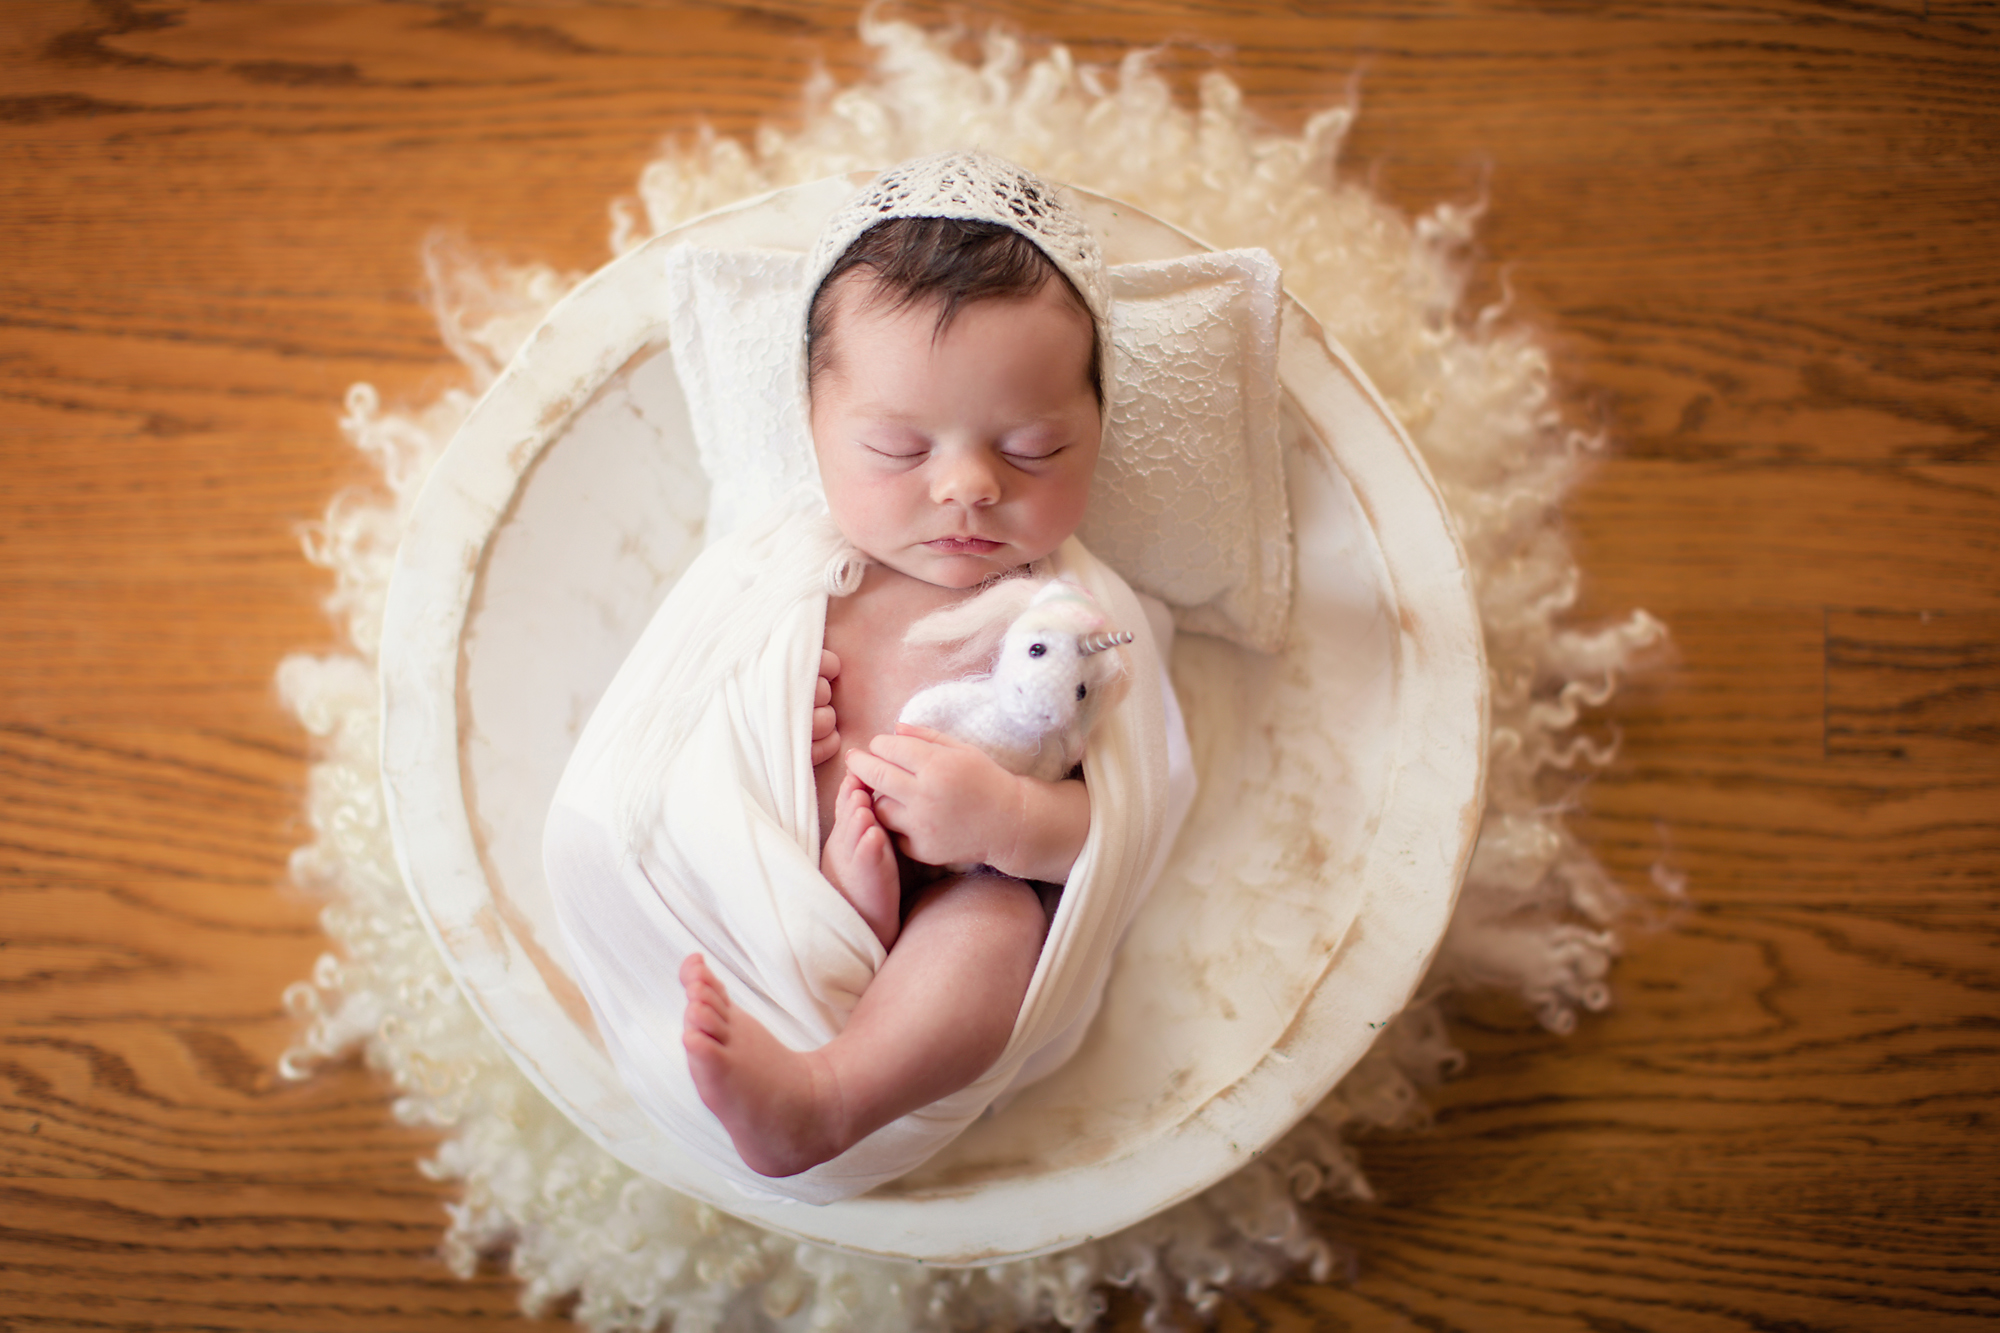 Newborn baby girl photoshoot idea. Calgary and Airdrie Newborn Photographer - Milashka Photography. Baby girl is wrapped in white and is holding a unicorn in a white bowl.